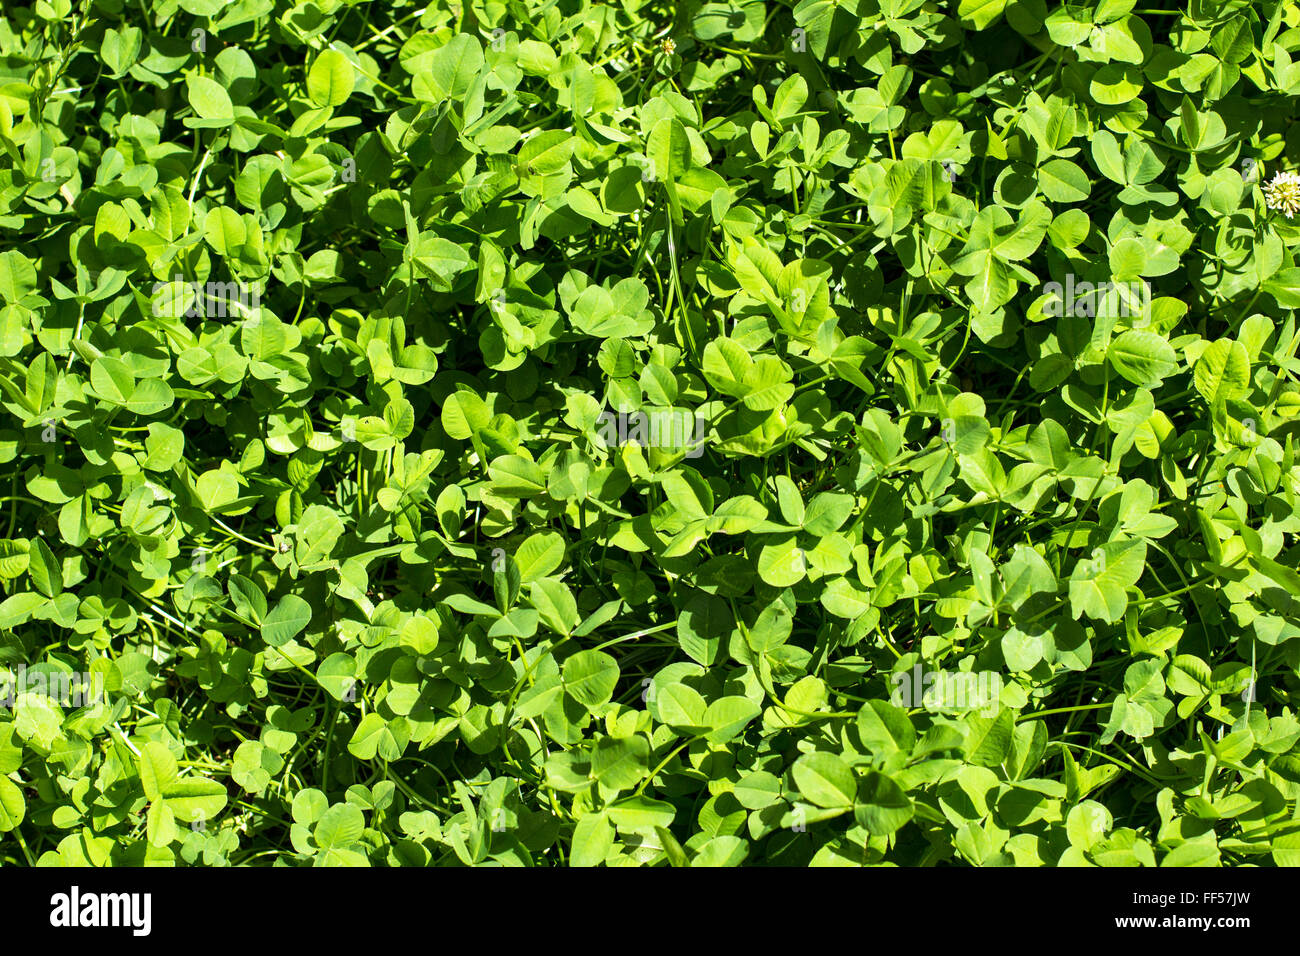 Clover And Lawn Stock Photos Amp Clover And Lawn Stock